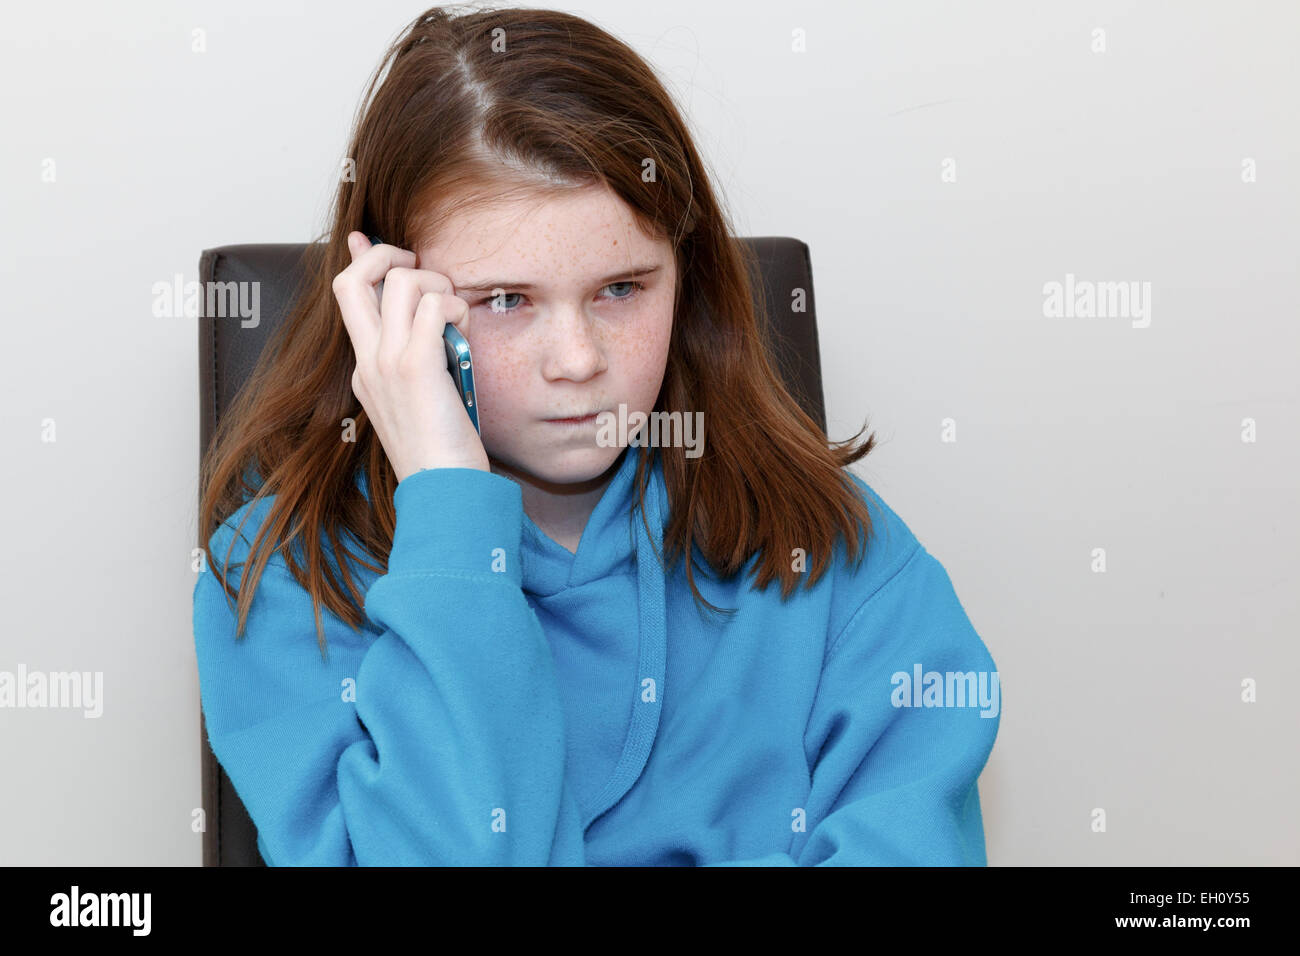 Girl (9-11 years) with red brown hair and freckles talking on a cell phone with a frown cross or angry expression. - Stock Image